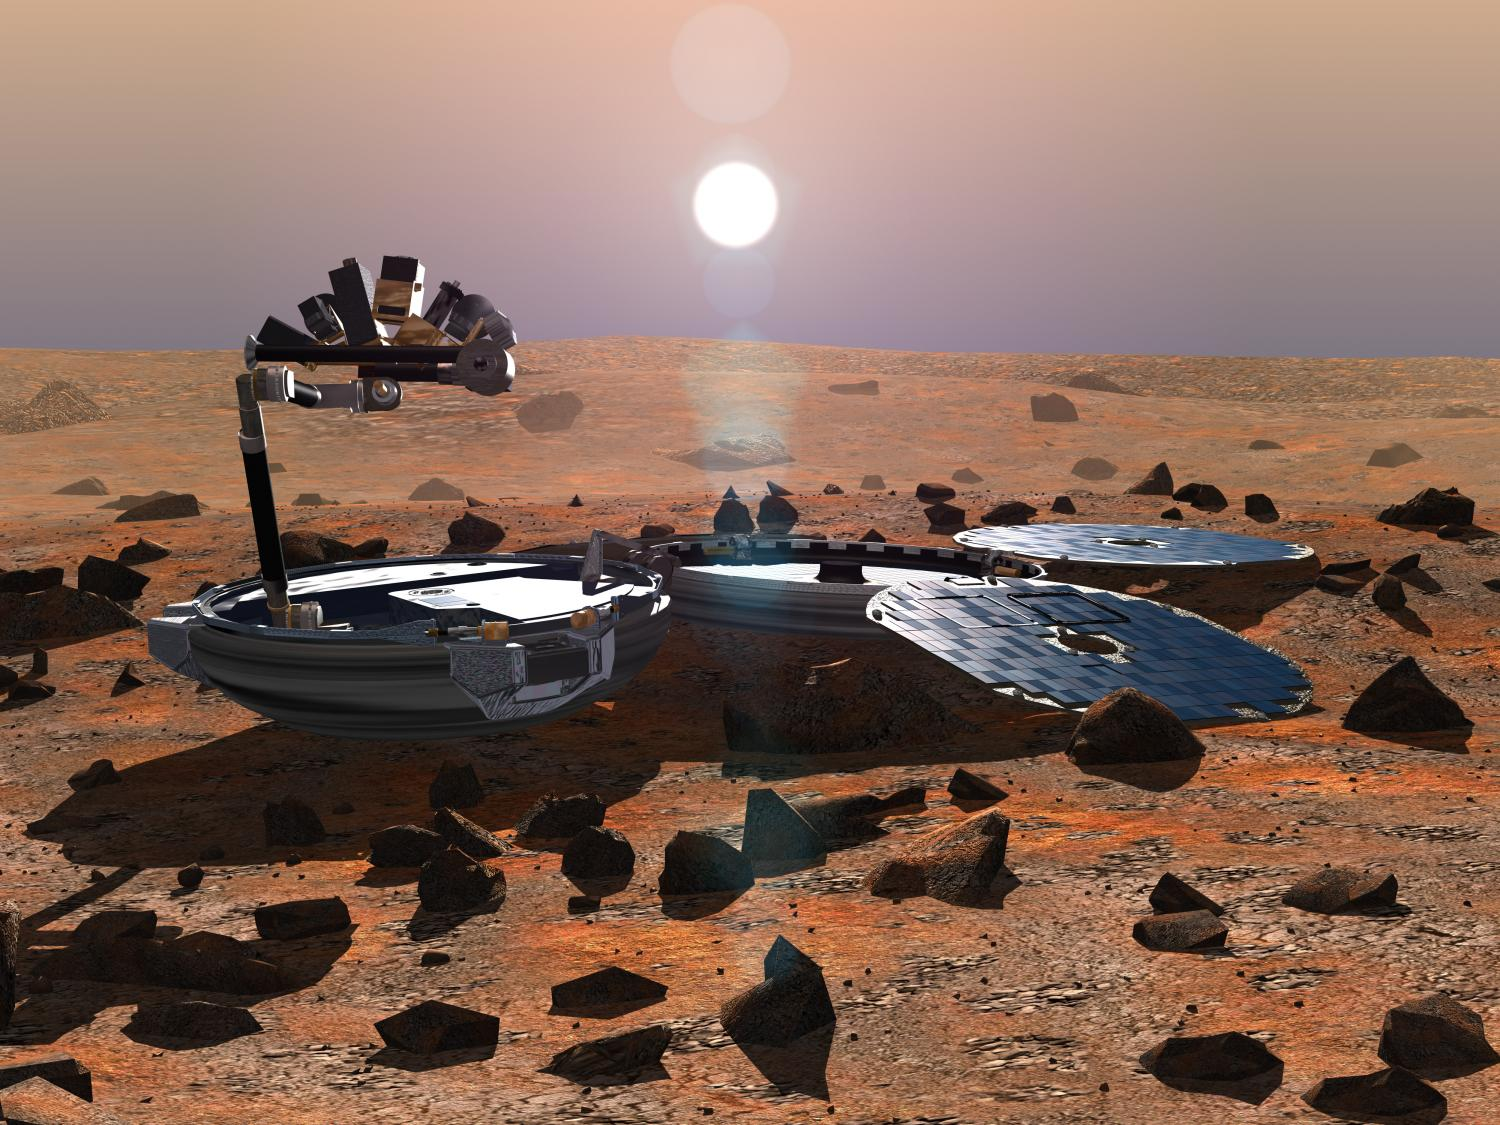 lost space probes - photo #1